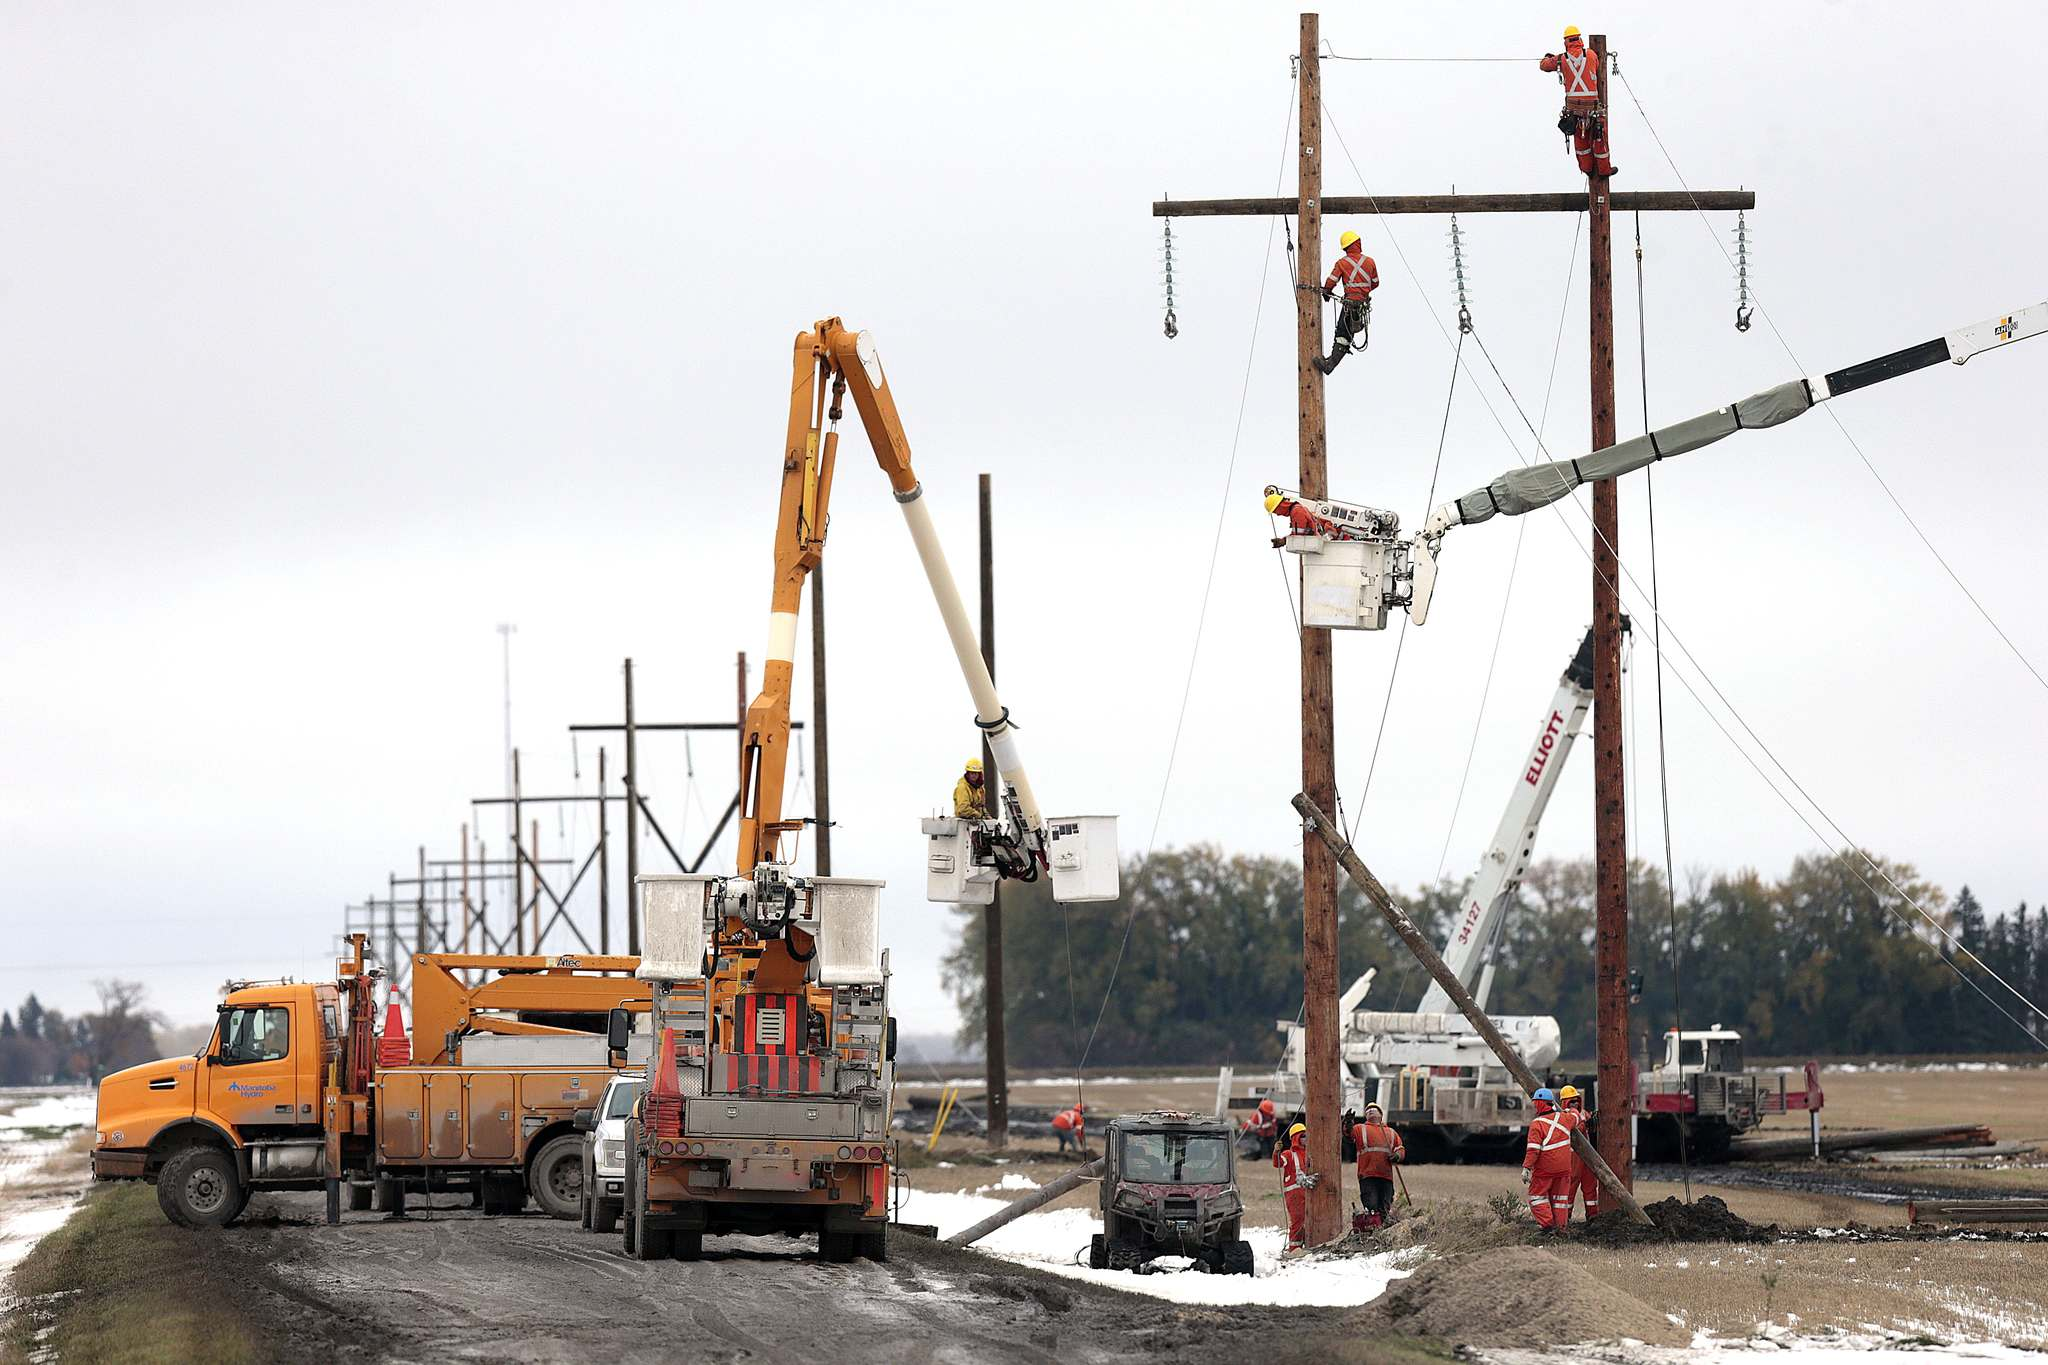 PHIL HOSSACK / WINNIPEG FREE PRESS</p><p>Hydro crews from Manitoba and Saskatchewan work on downed lines after replacing shattered poles north of Portage la Prairie. Manitoba Hydro employees that are working away from home during the post-storm cleanup will not be able to vote in the federal election if they have not already made alternate arrangements, according to Elections Canada.</p>